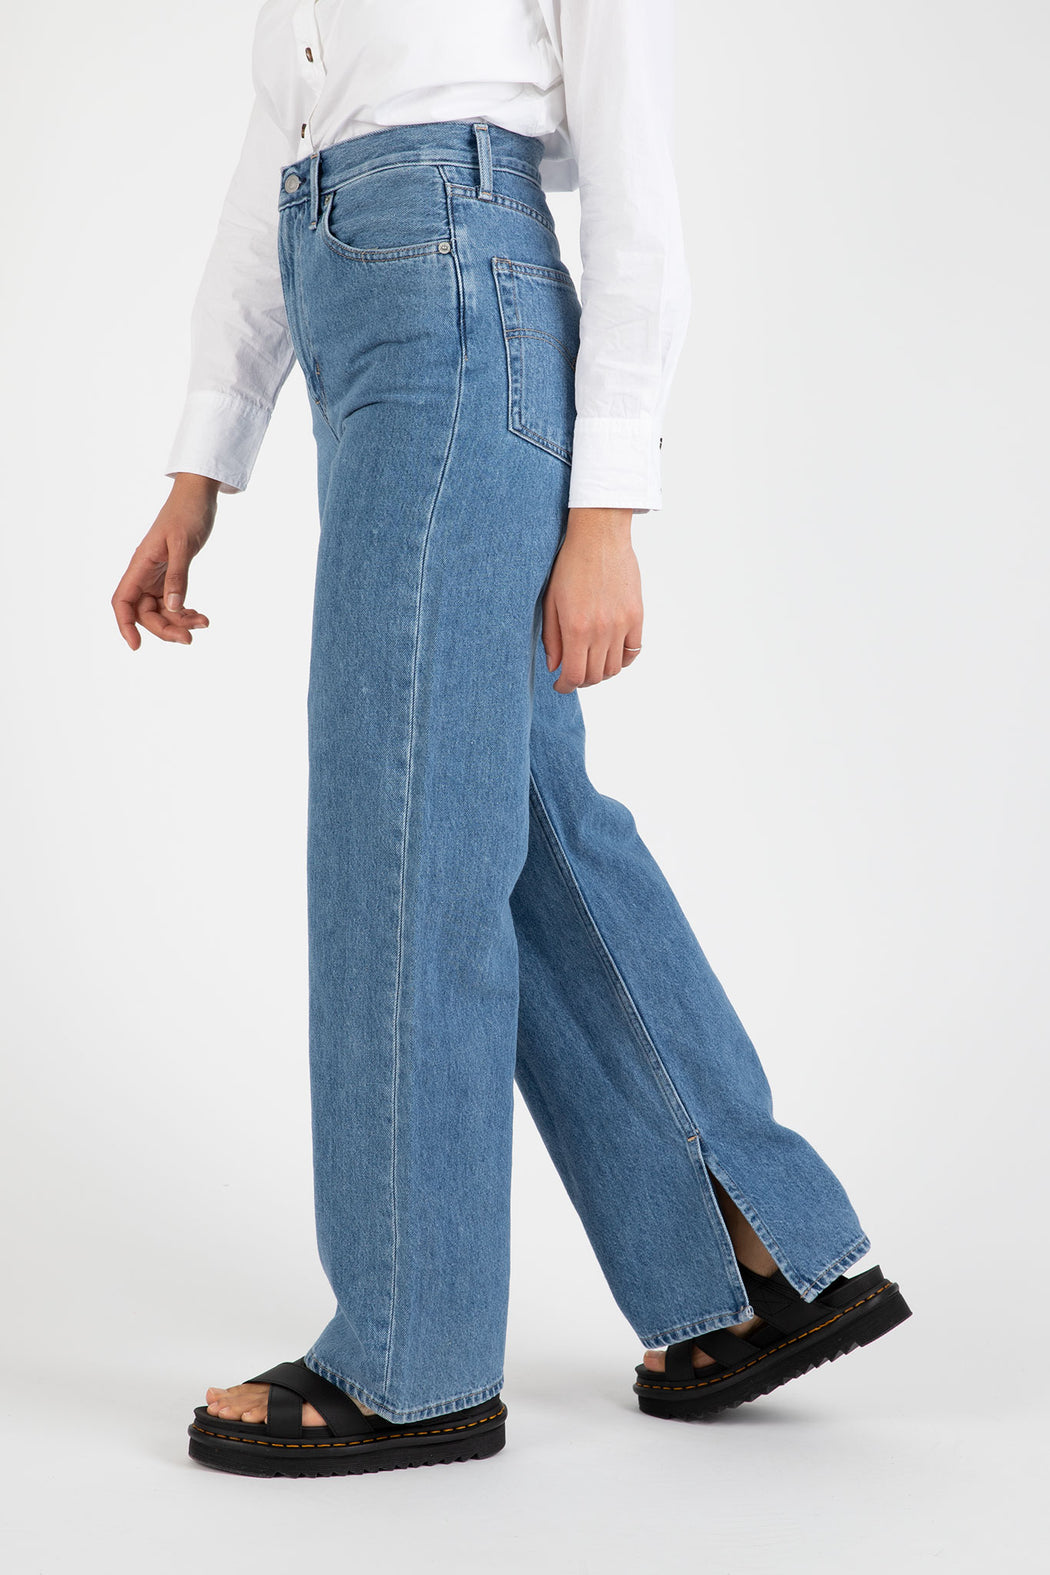 Ganni-Medium-Indigo-Denim-High-Waisted-Pants